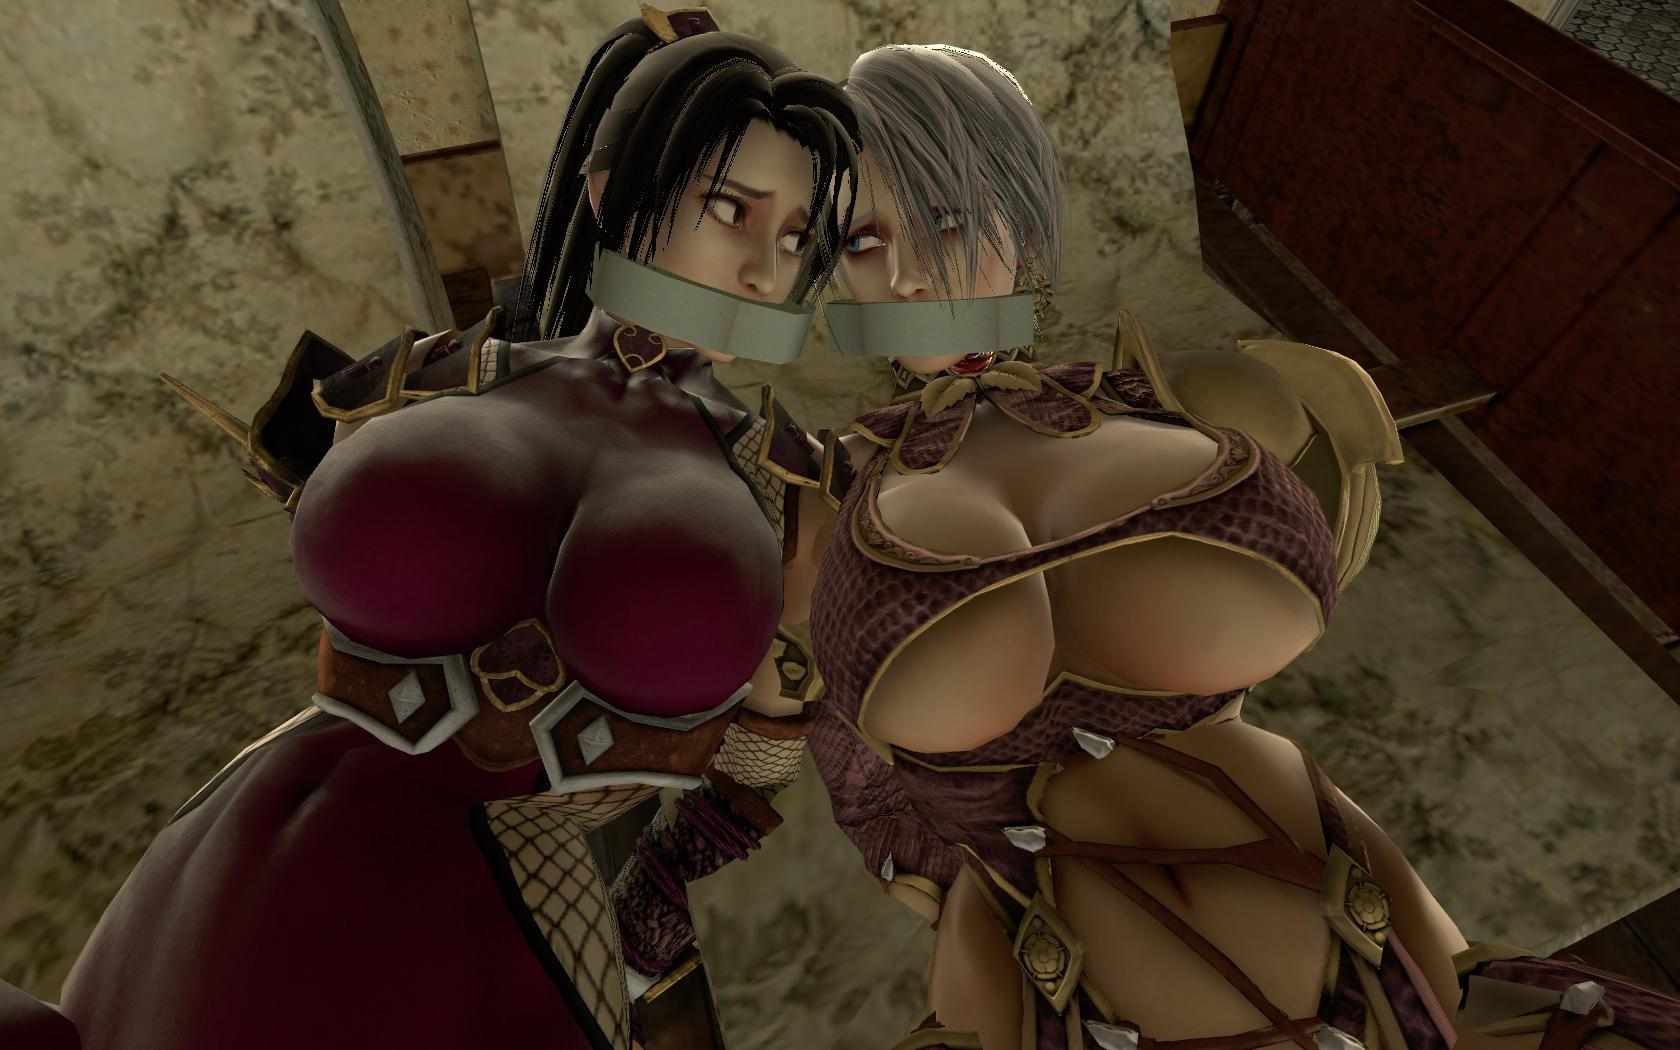 Suggest Soul calibur porn accept